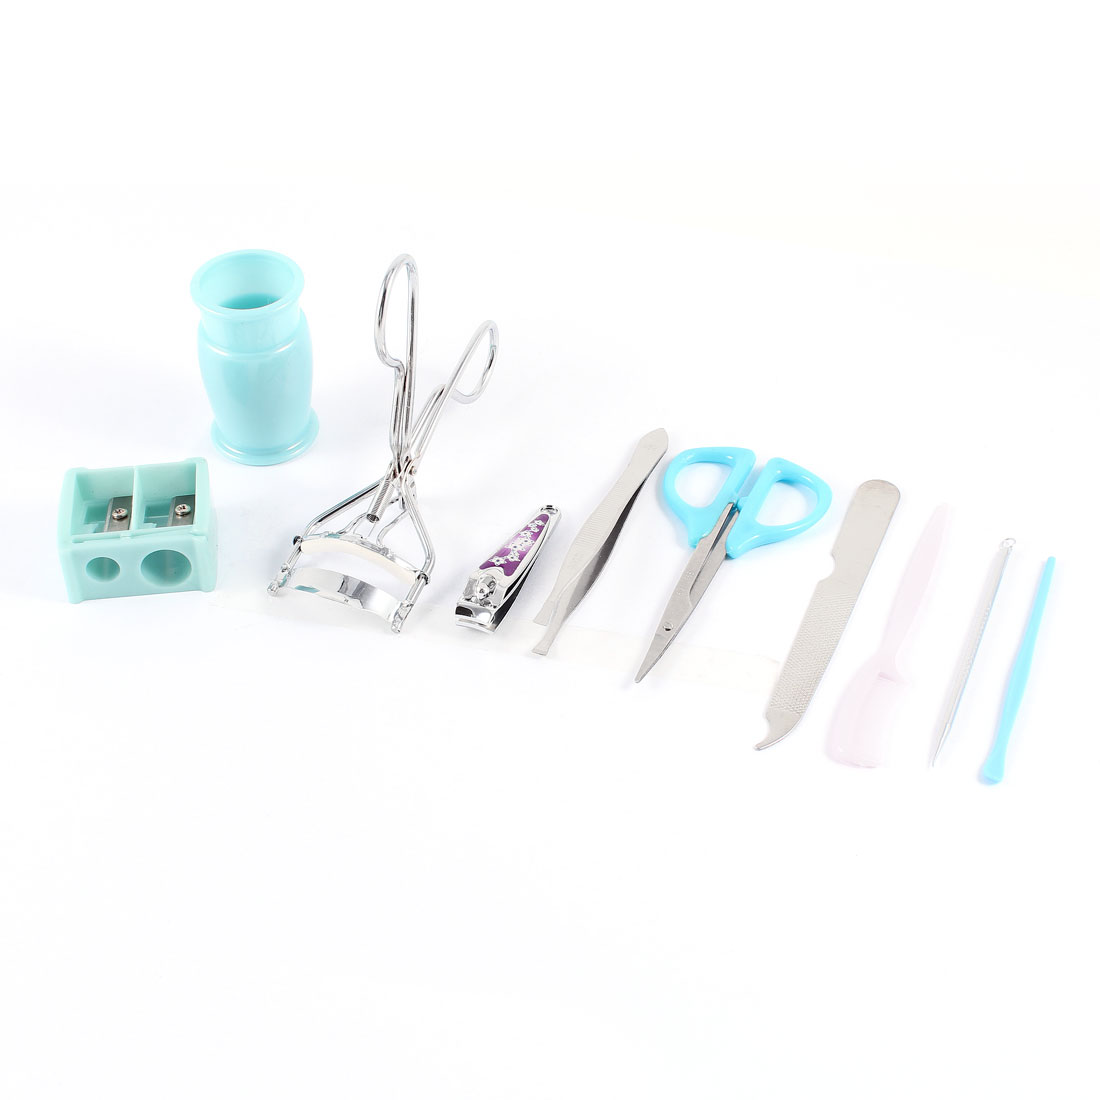 9 in 1 Nail File Eyebrow Scissors Eye Lash Curler Beauty Tools Set Blue